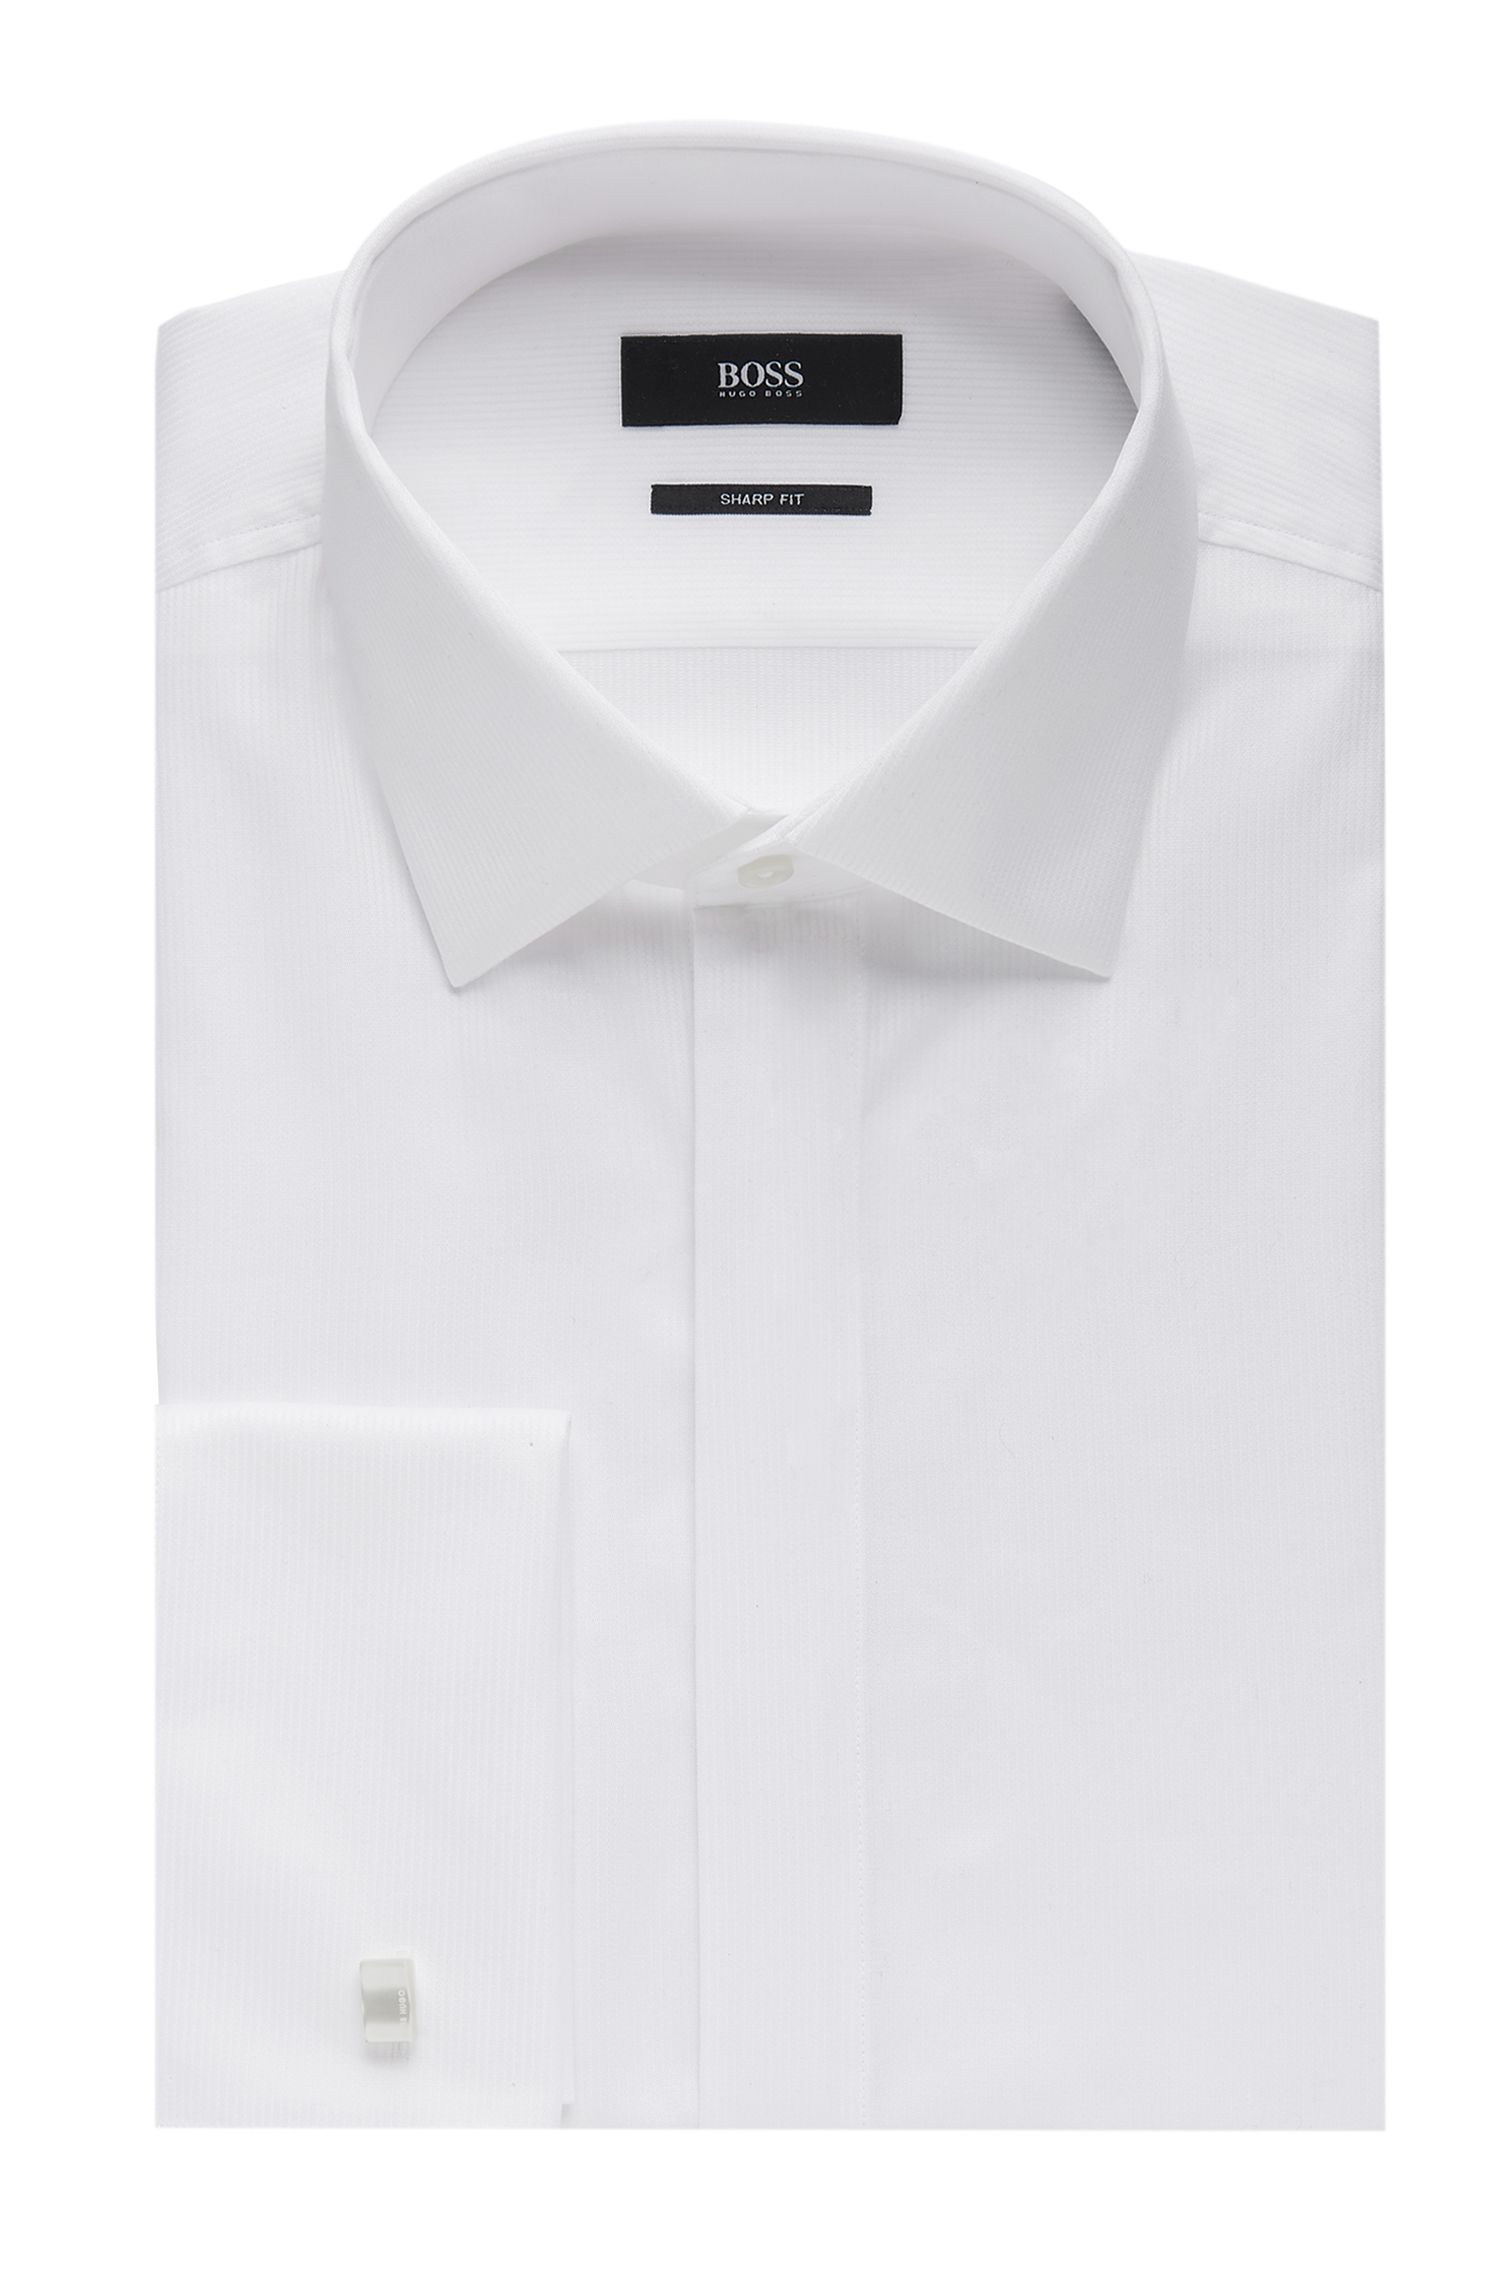 'Ismo' | Slim fit, French Cuff Pique Cotton Dress Shirt